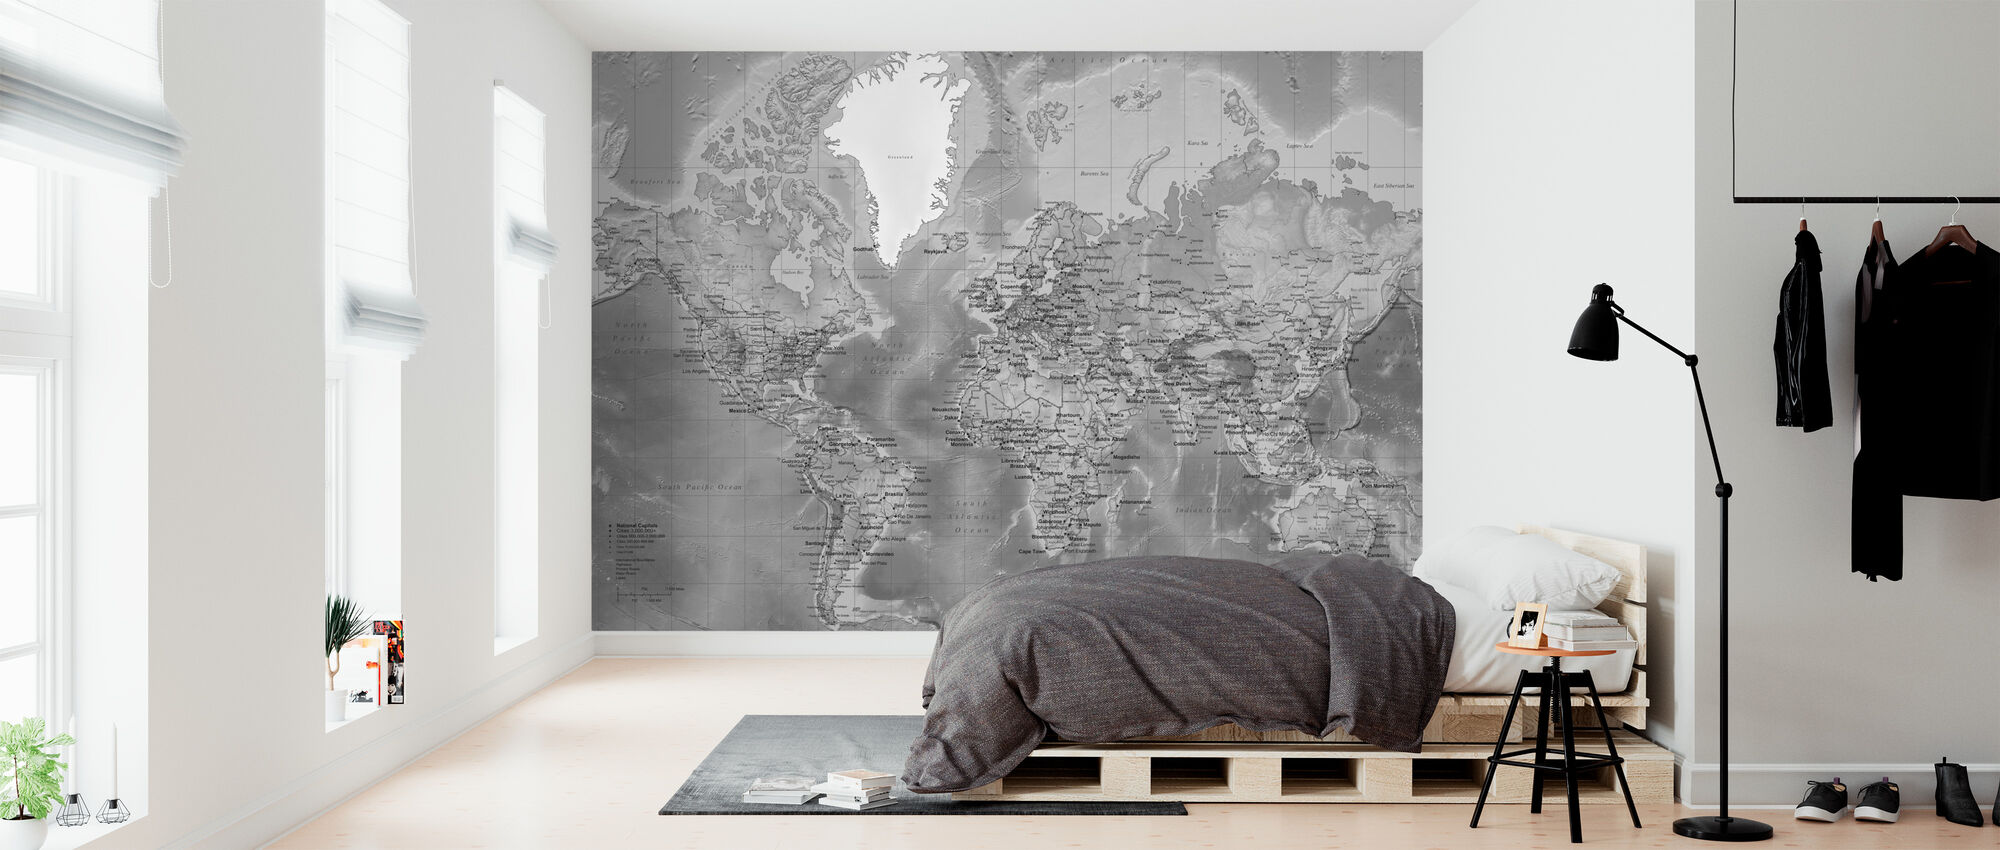 World Map - Detailed with Roads - Grey - Wallpaper - Bedroom